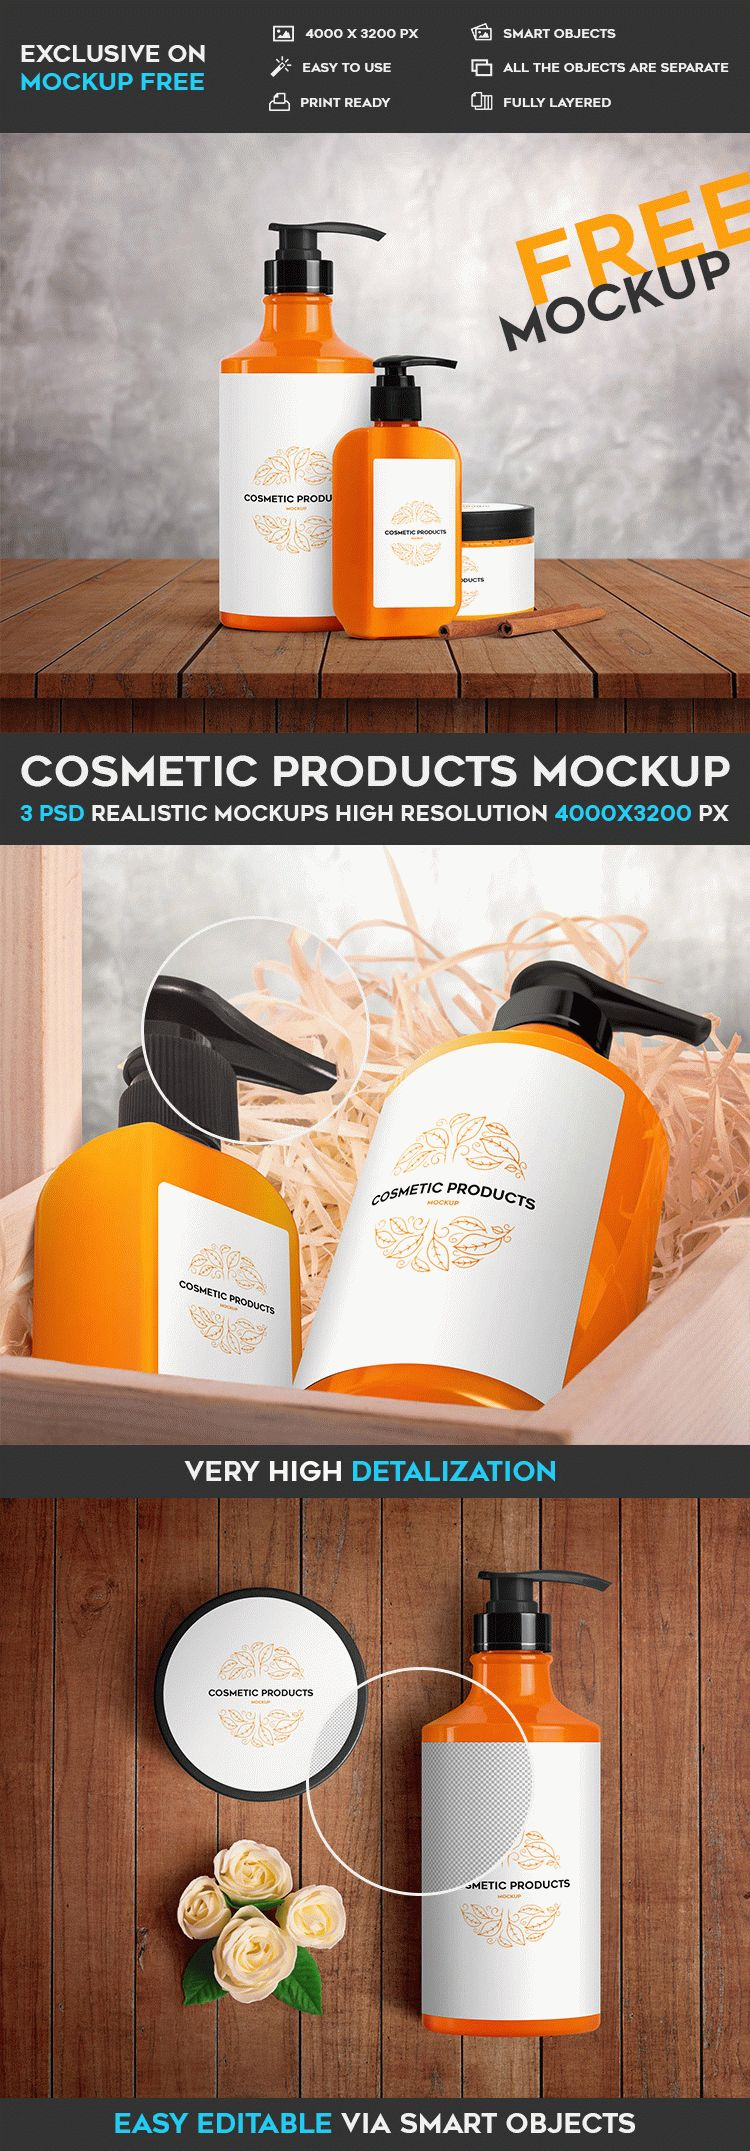 bigpreview_cosmetic-products-mockup-template-free-in-psd